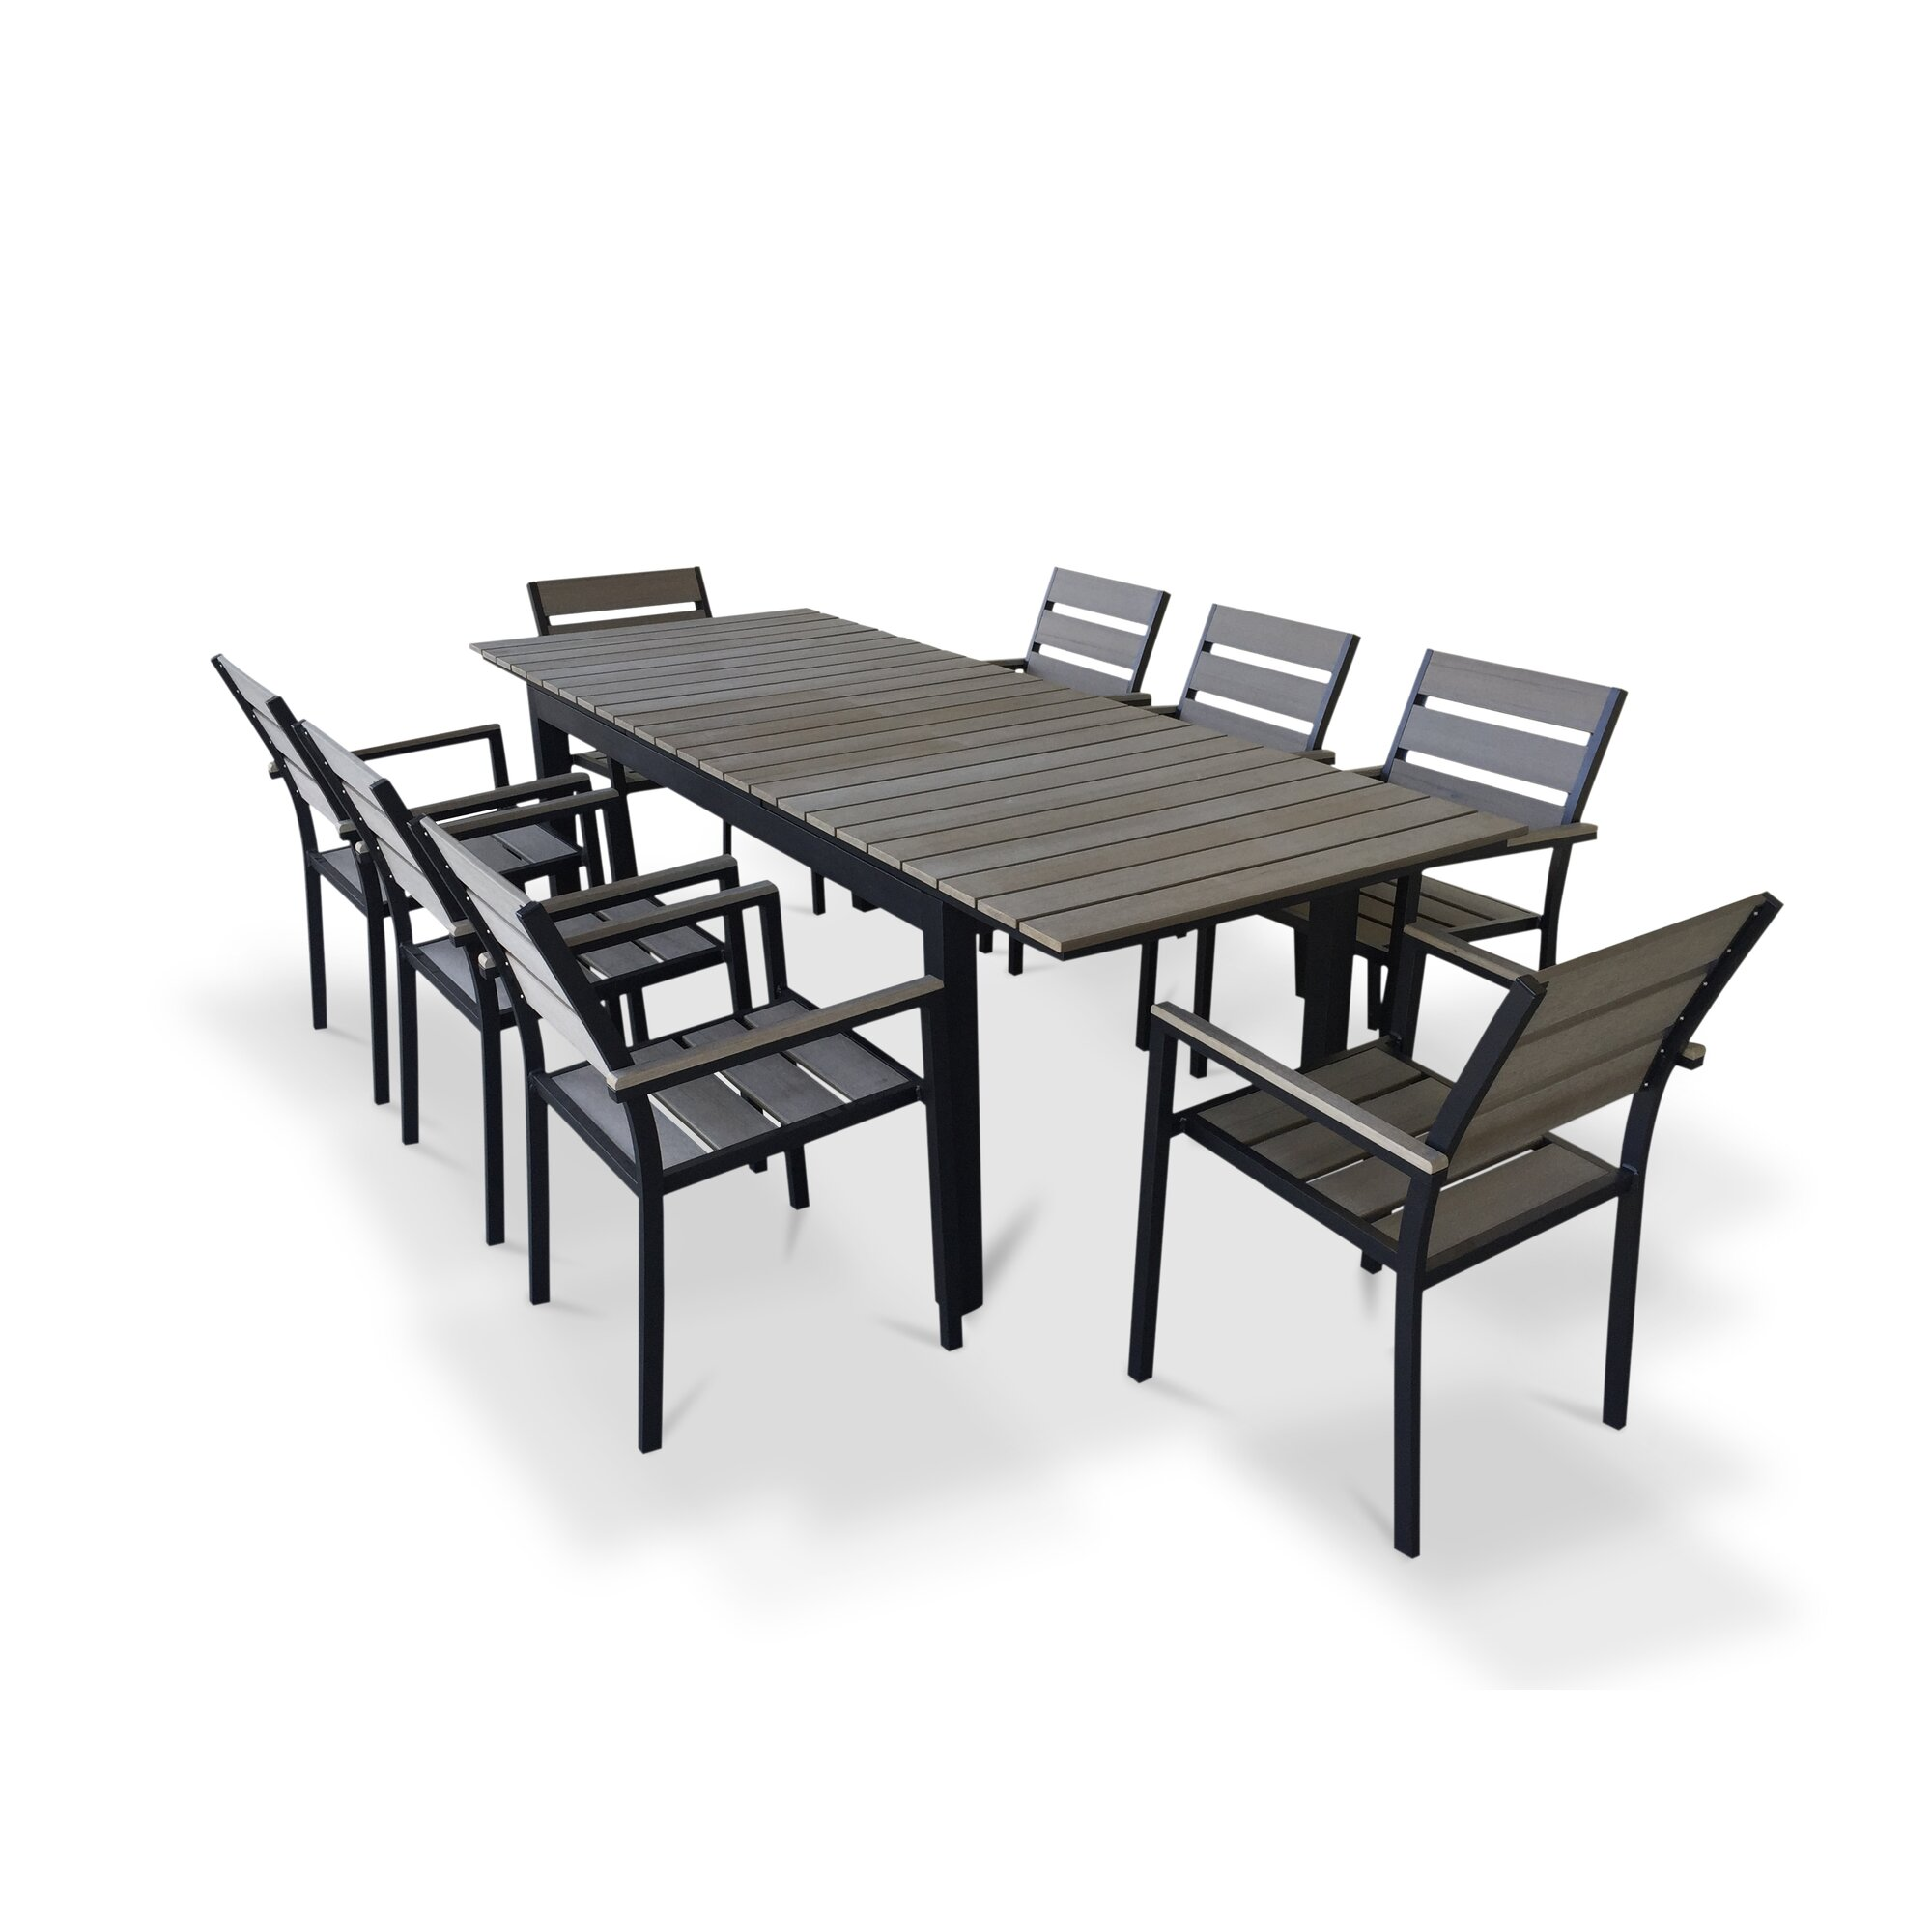 Dining Sets Clearance: Urban Furnishings 9 Piece Extendable Outdoor Dining Set